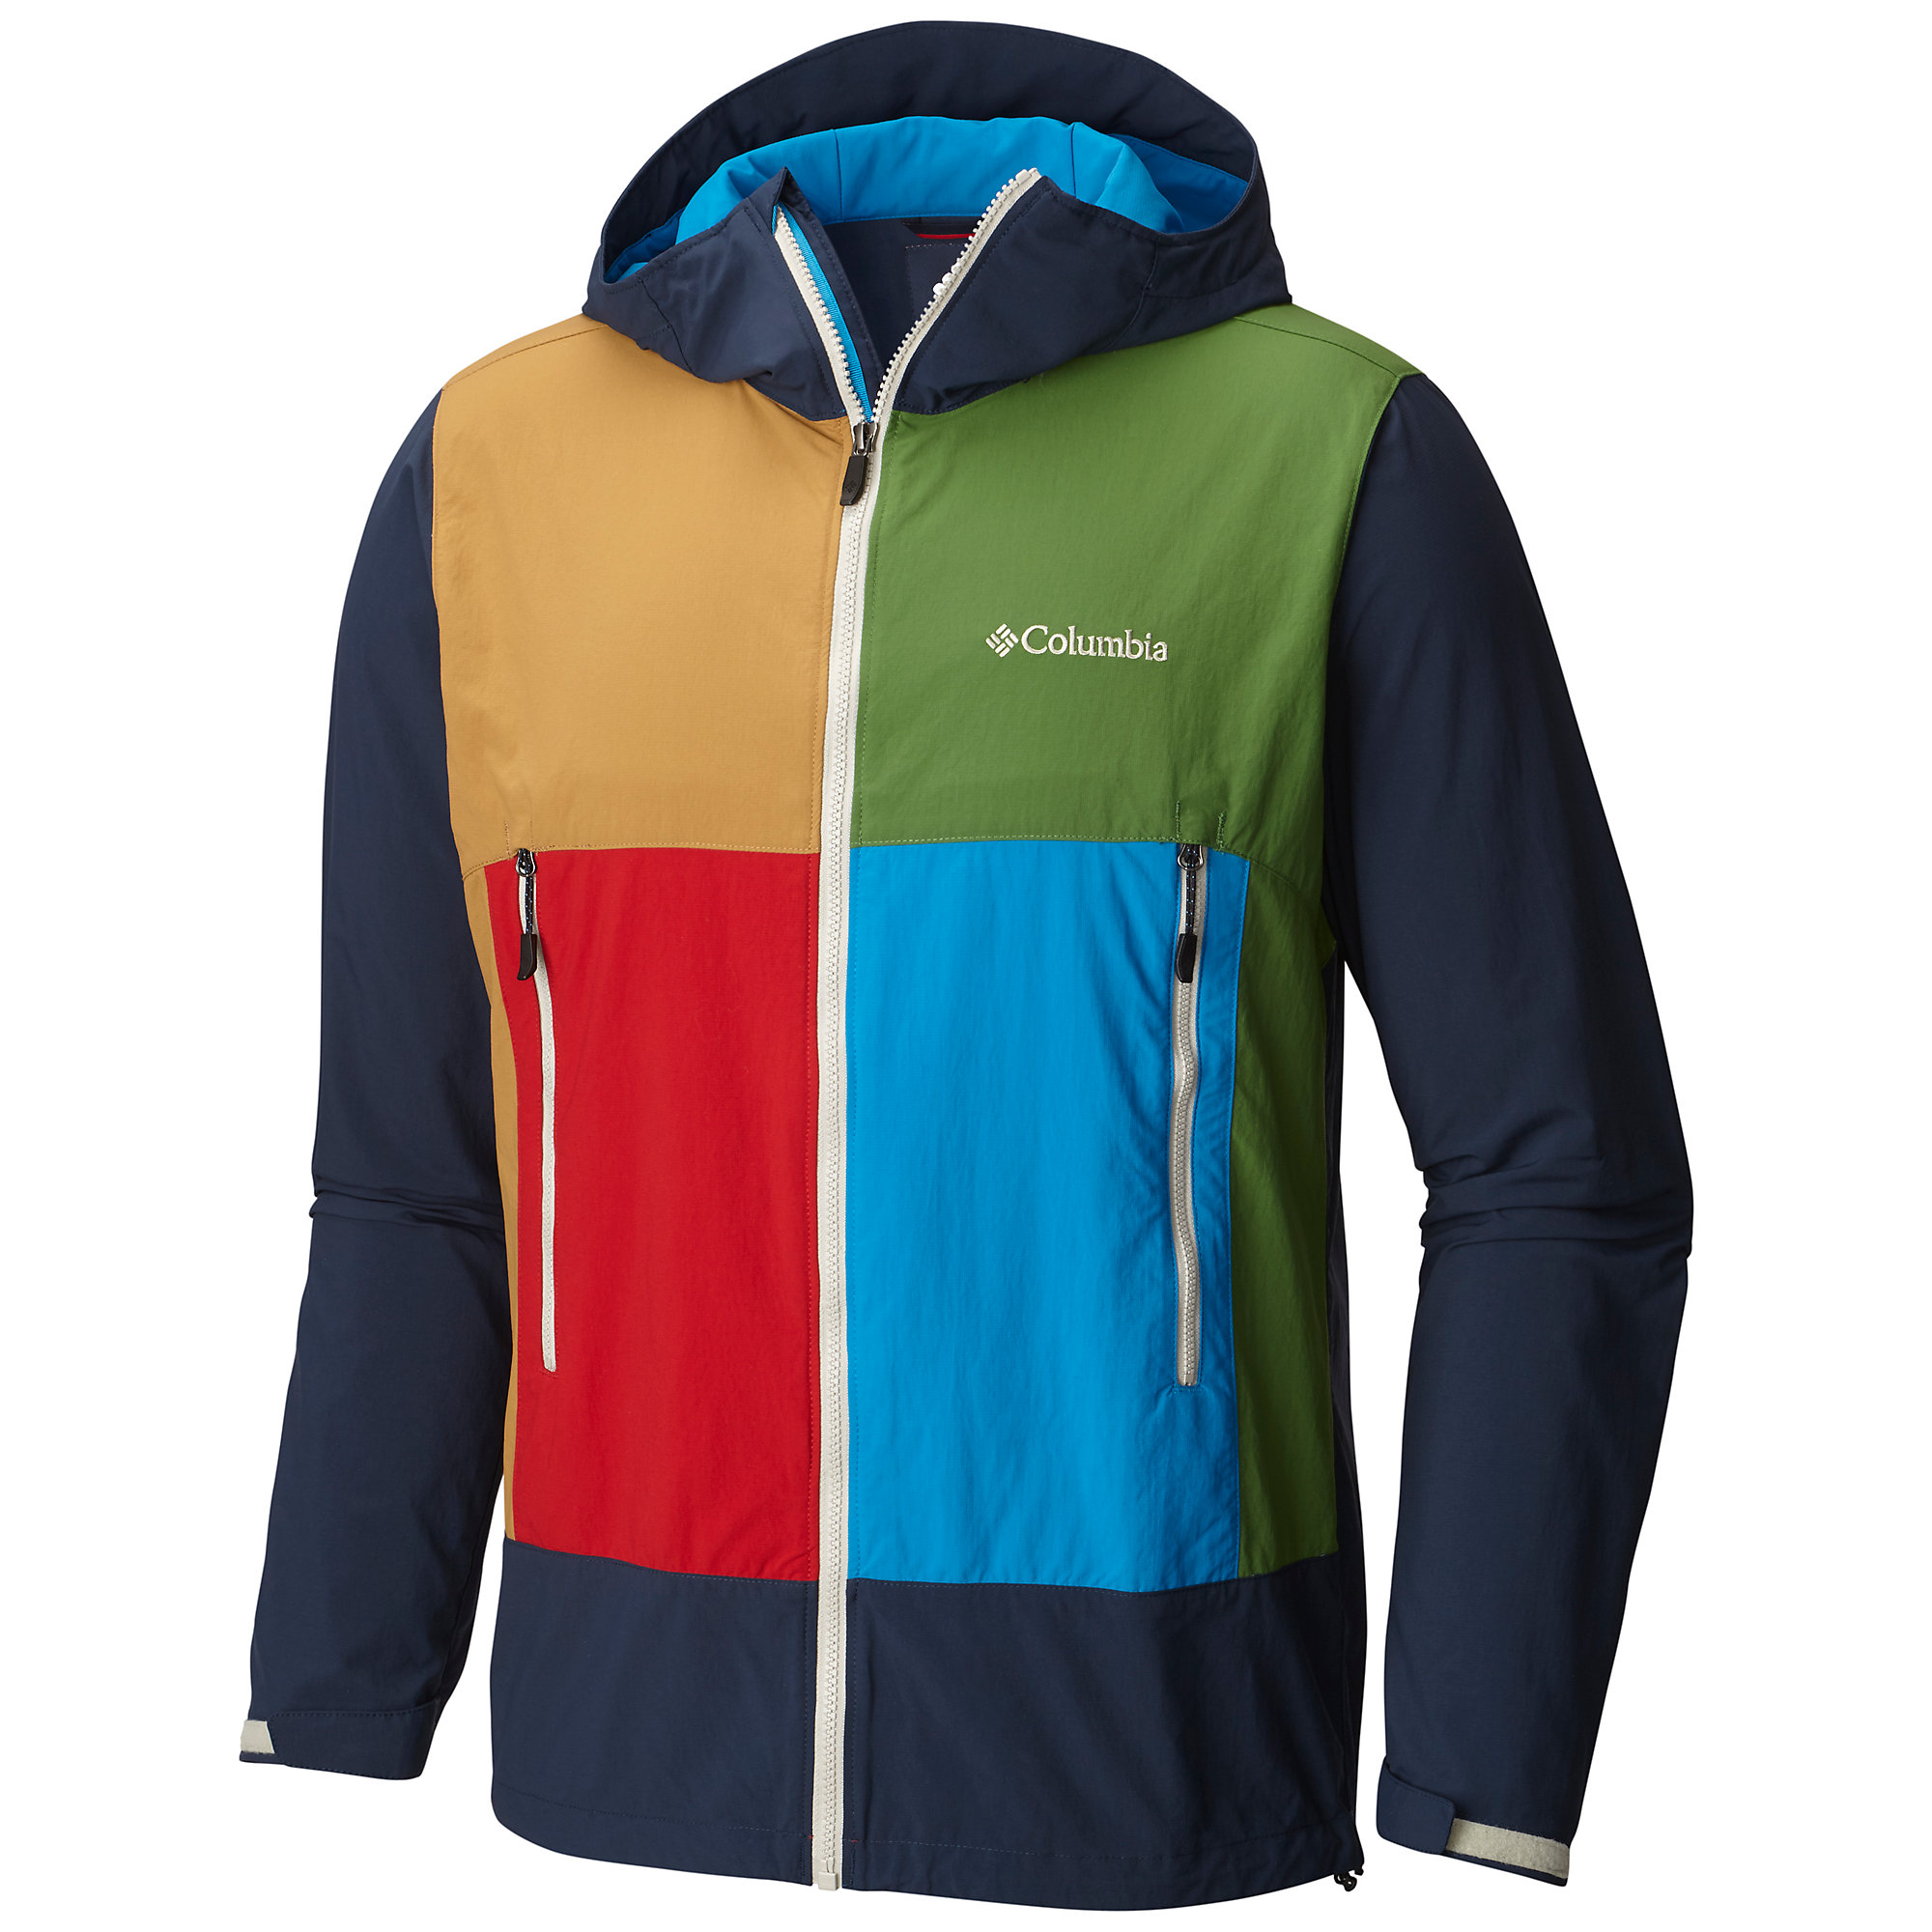 Columbia Frocks Jacket